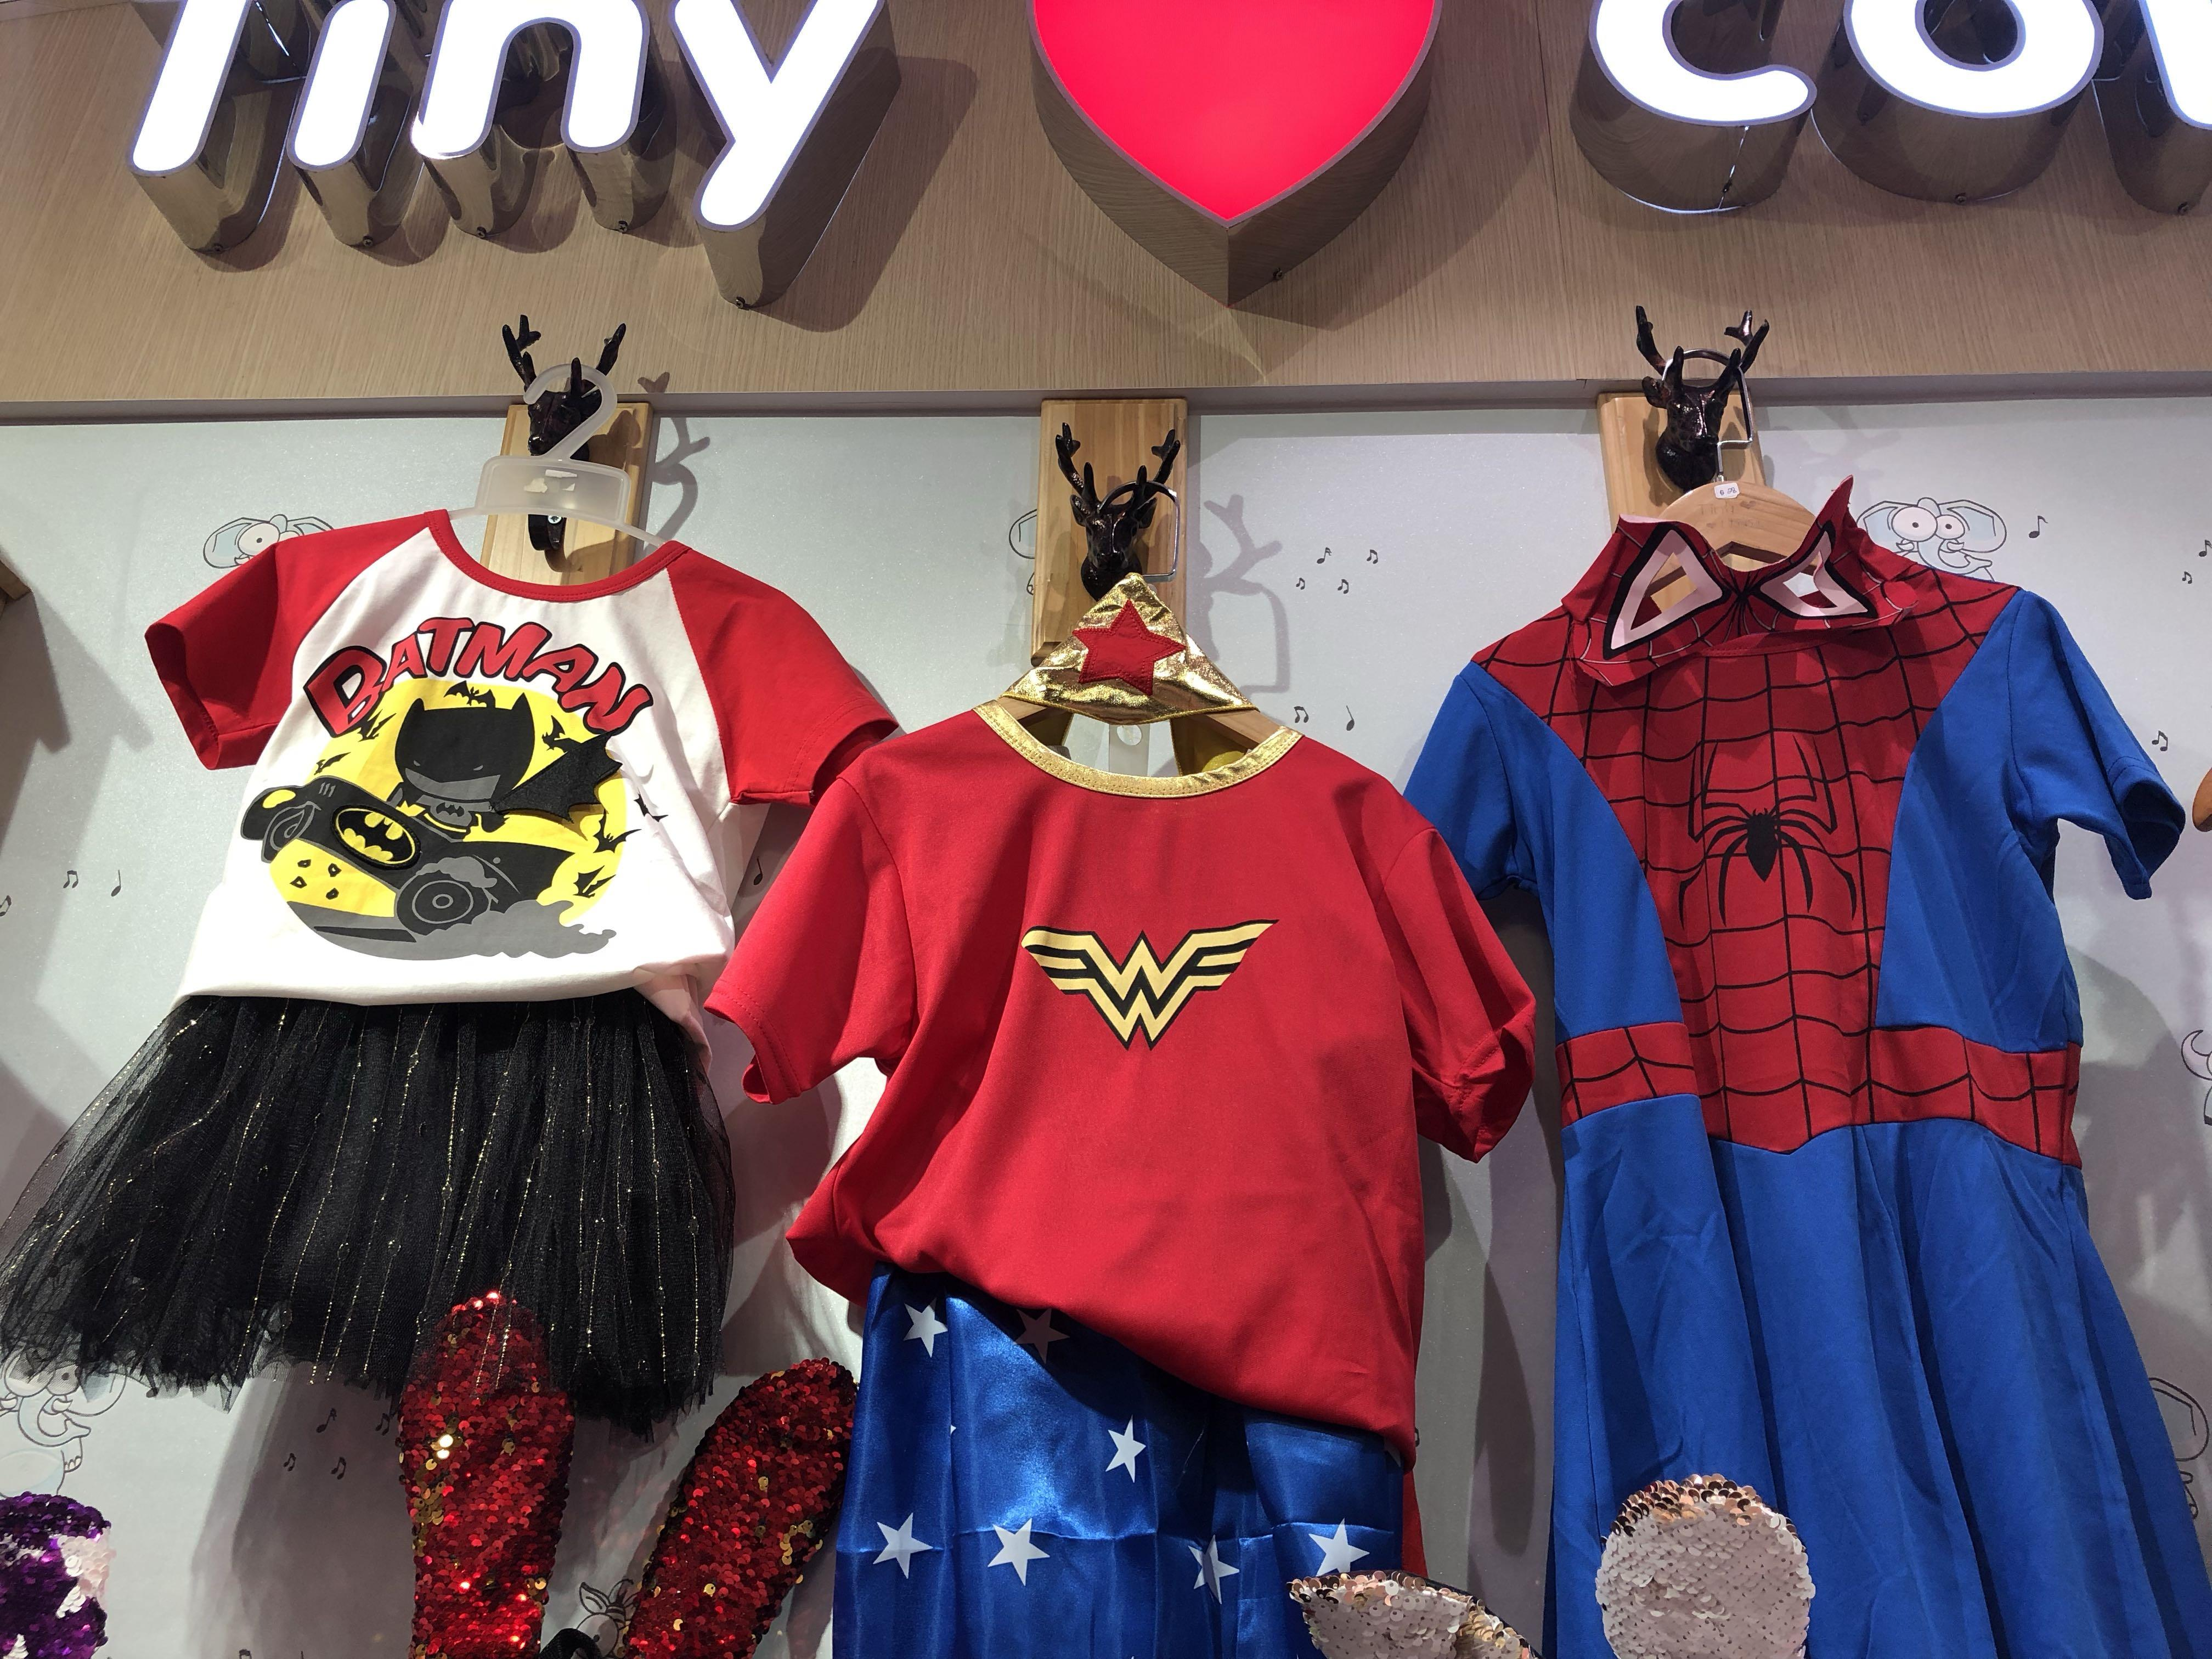 Super hero costume for girls (children's day costume )